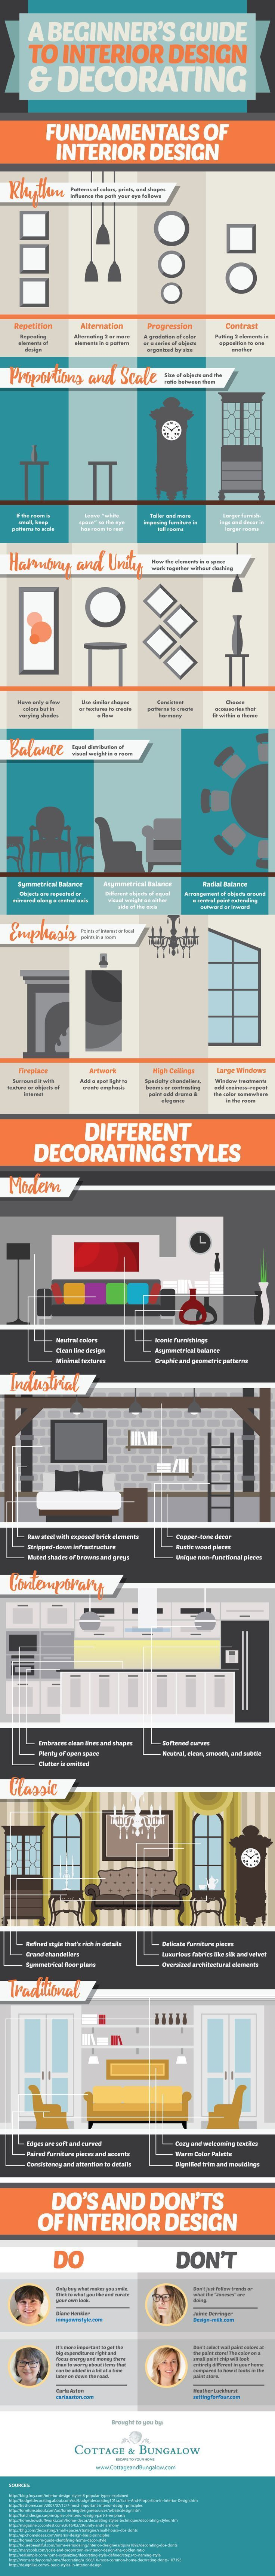 best 25 house design ideas on pinterest interior design kitchen traditional storage and organization and houzz